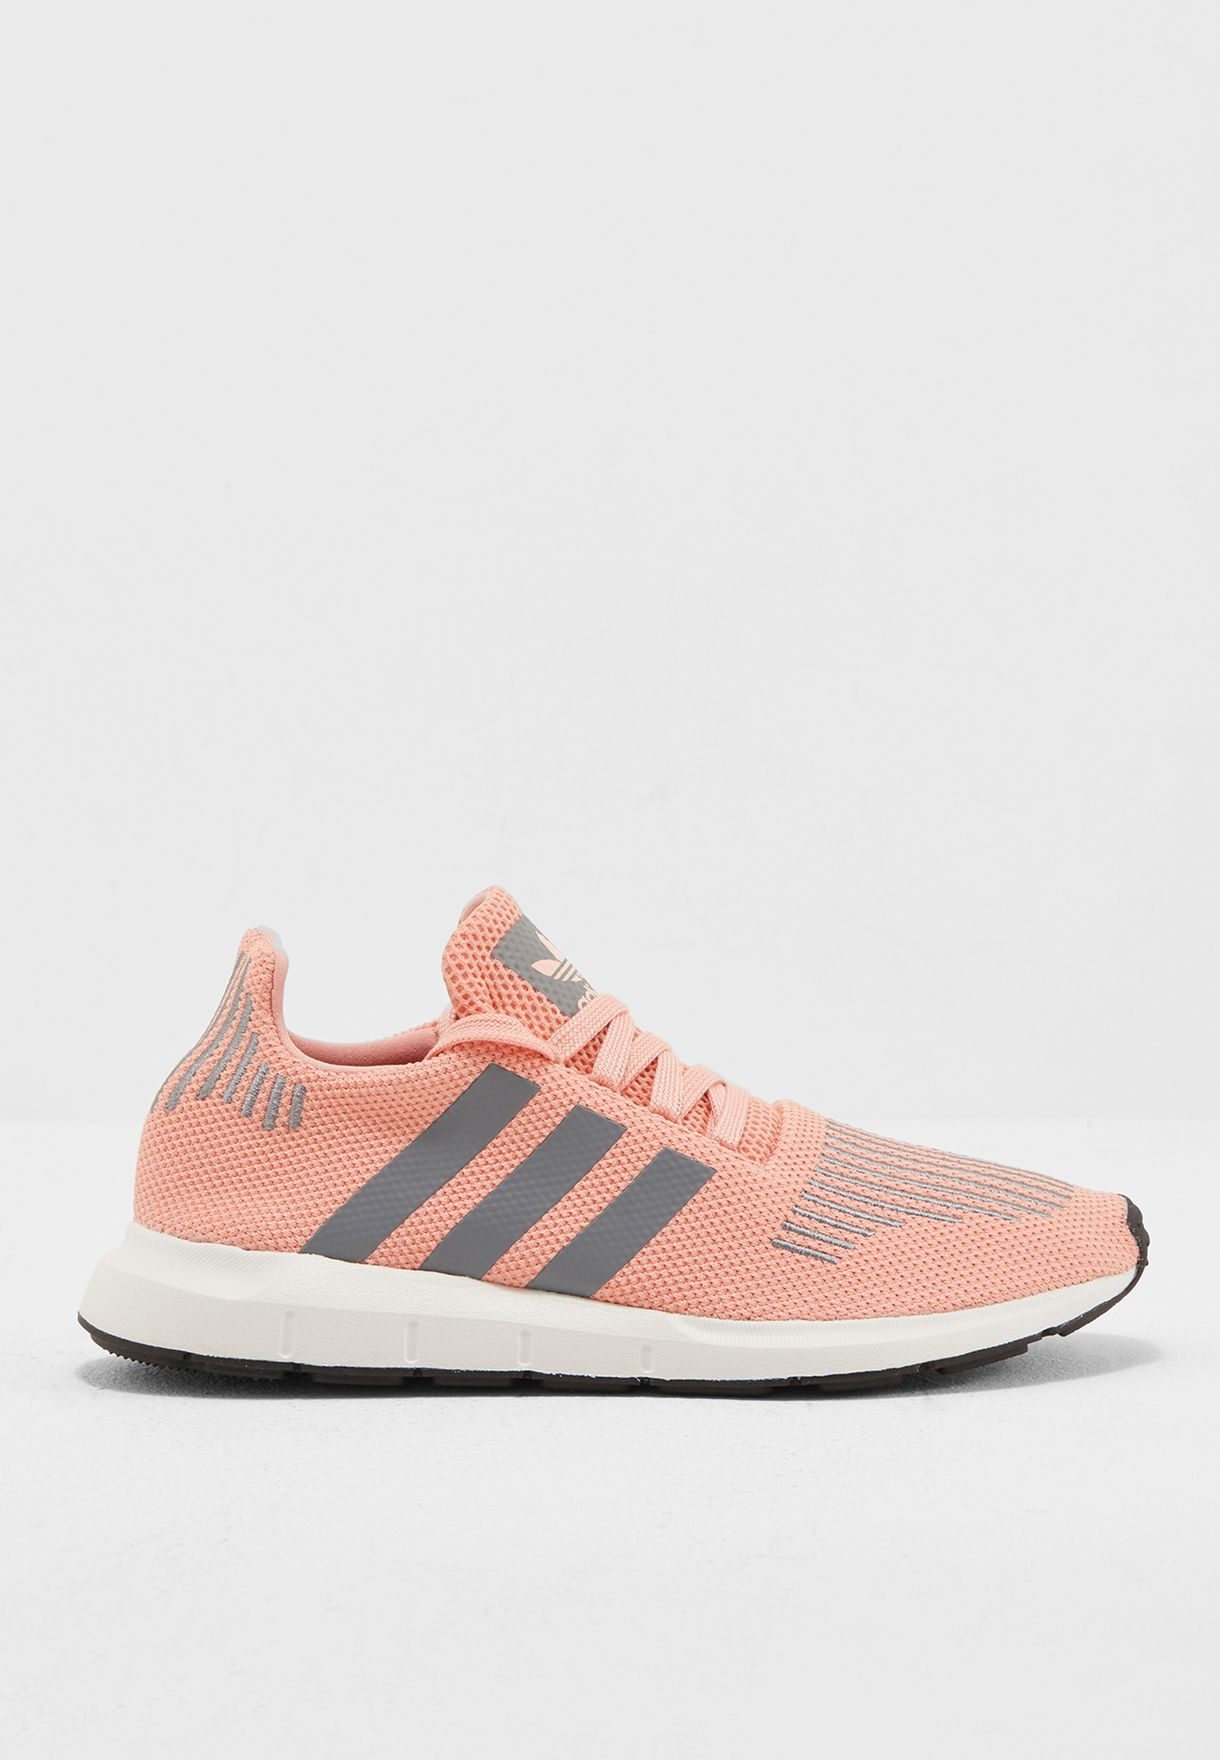 4012eafcb Shop adidas Originals pink Swift Run W CG4139 for Women in UAE ...